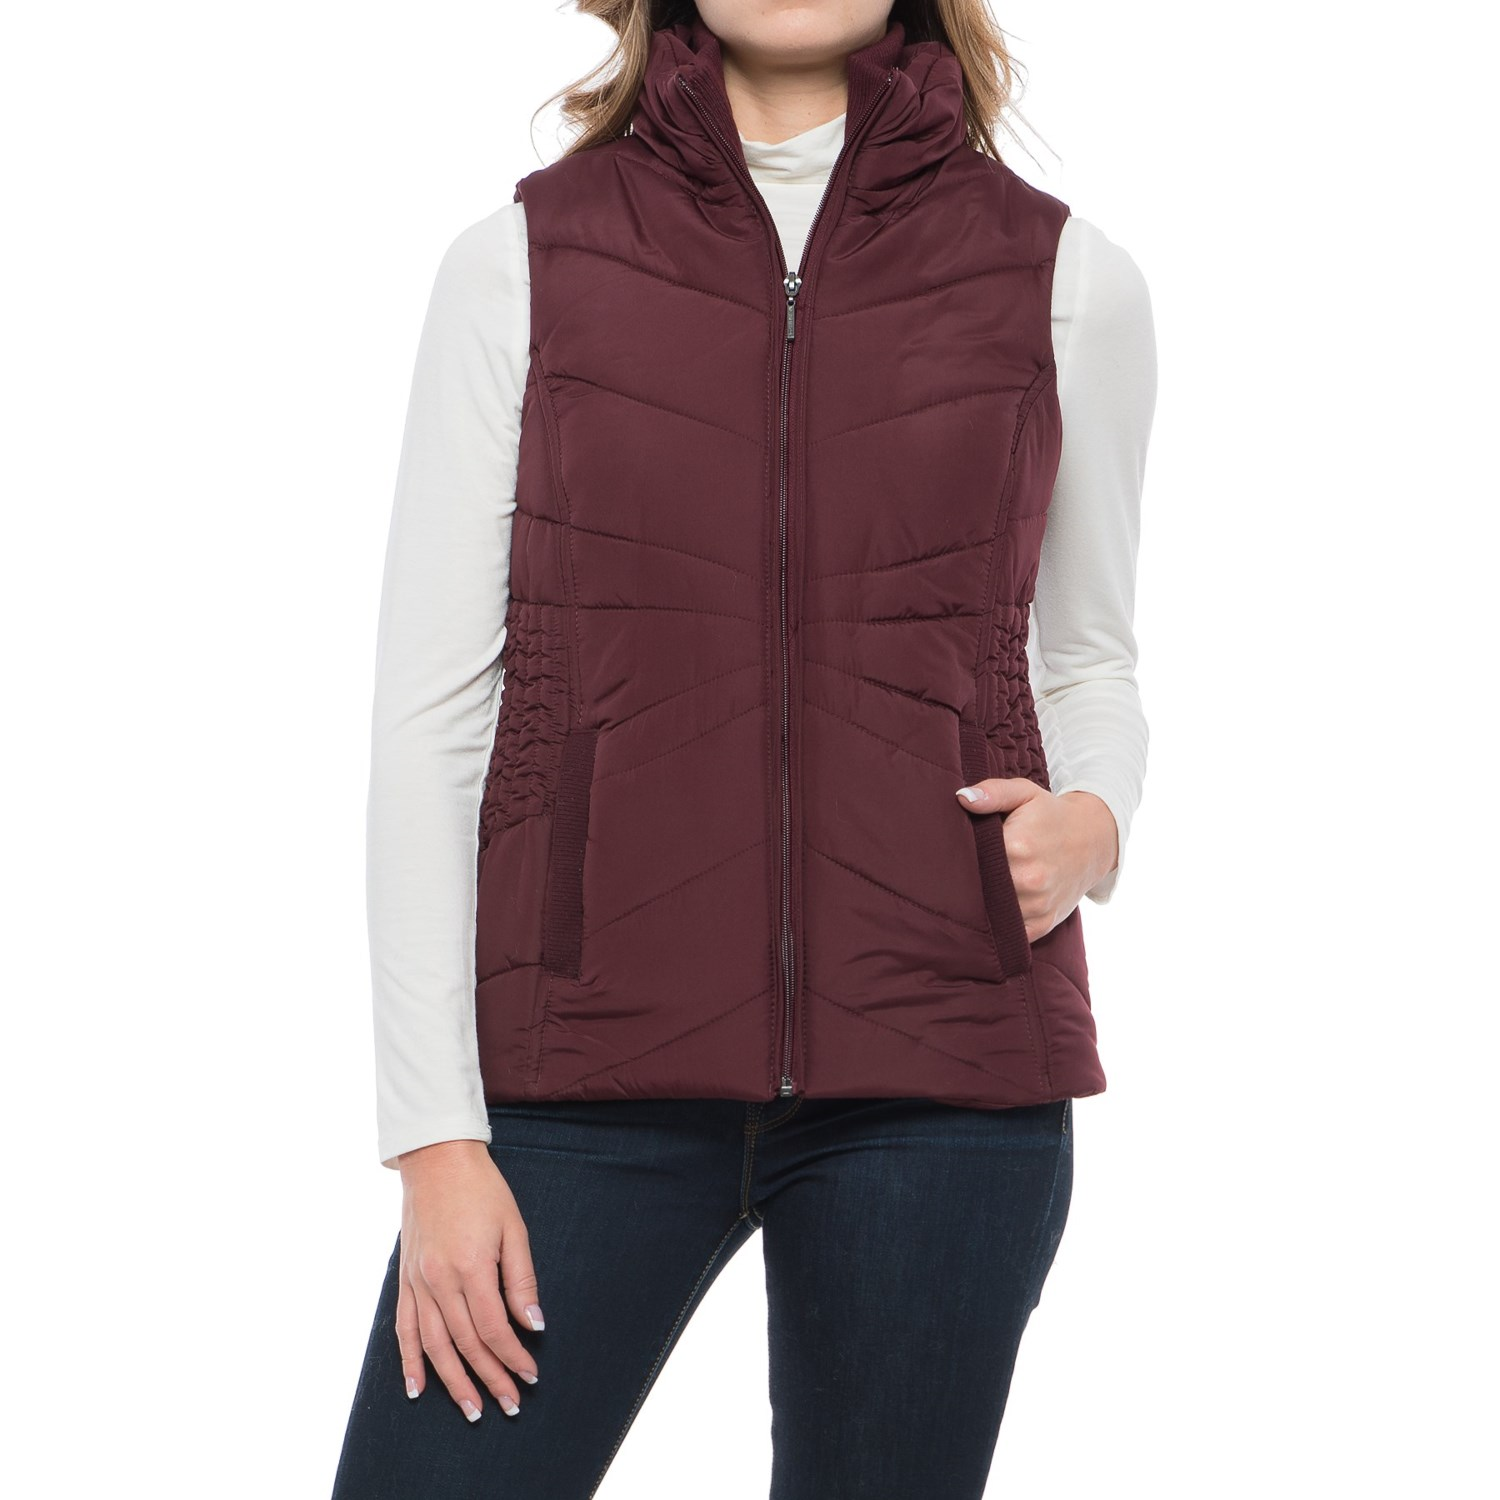 Puffer Vests. This fall and winter, bundle up in puffer vests before heading out to brave the cold. Don't get caught in the cold. Slip arms through the sleeve holes and zip the front closure all the way up (button the flap closed for good measure).